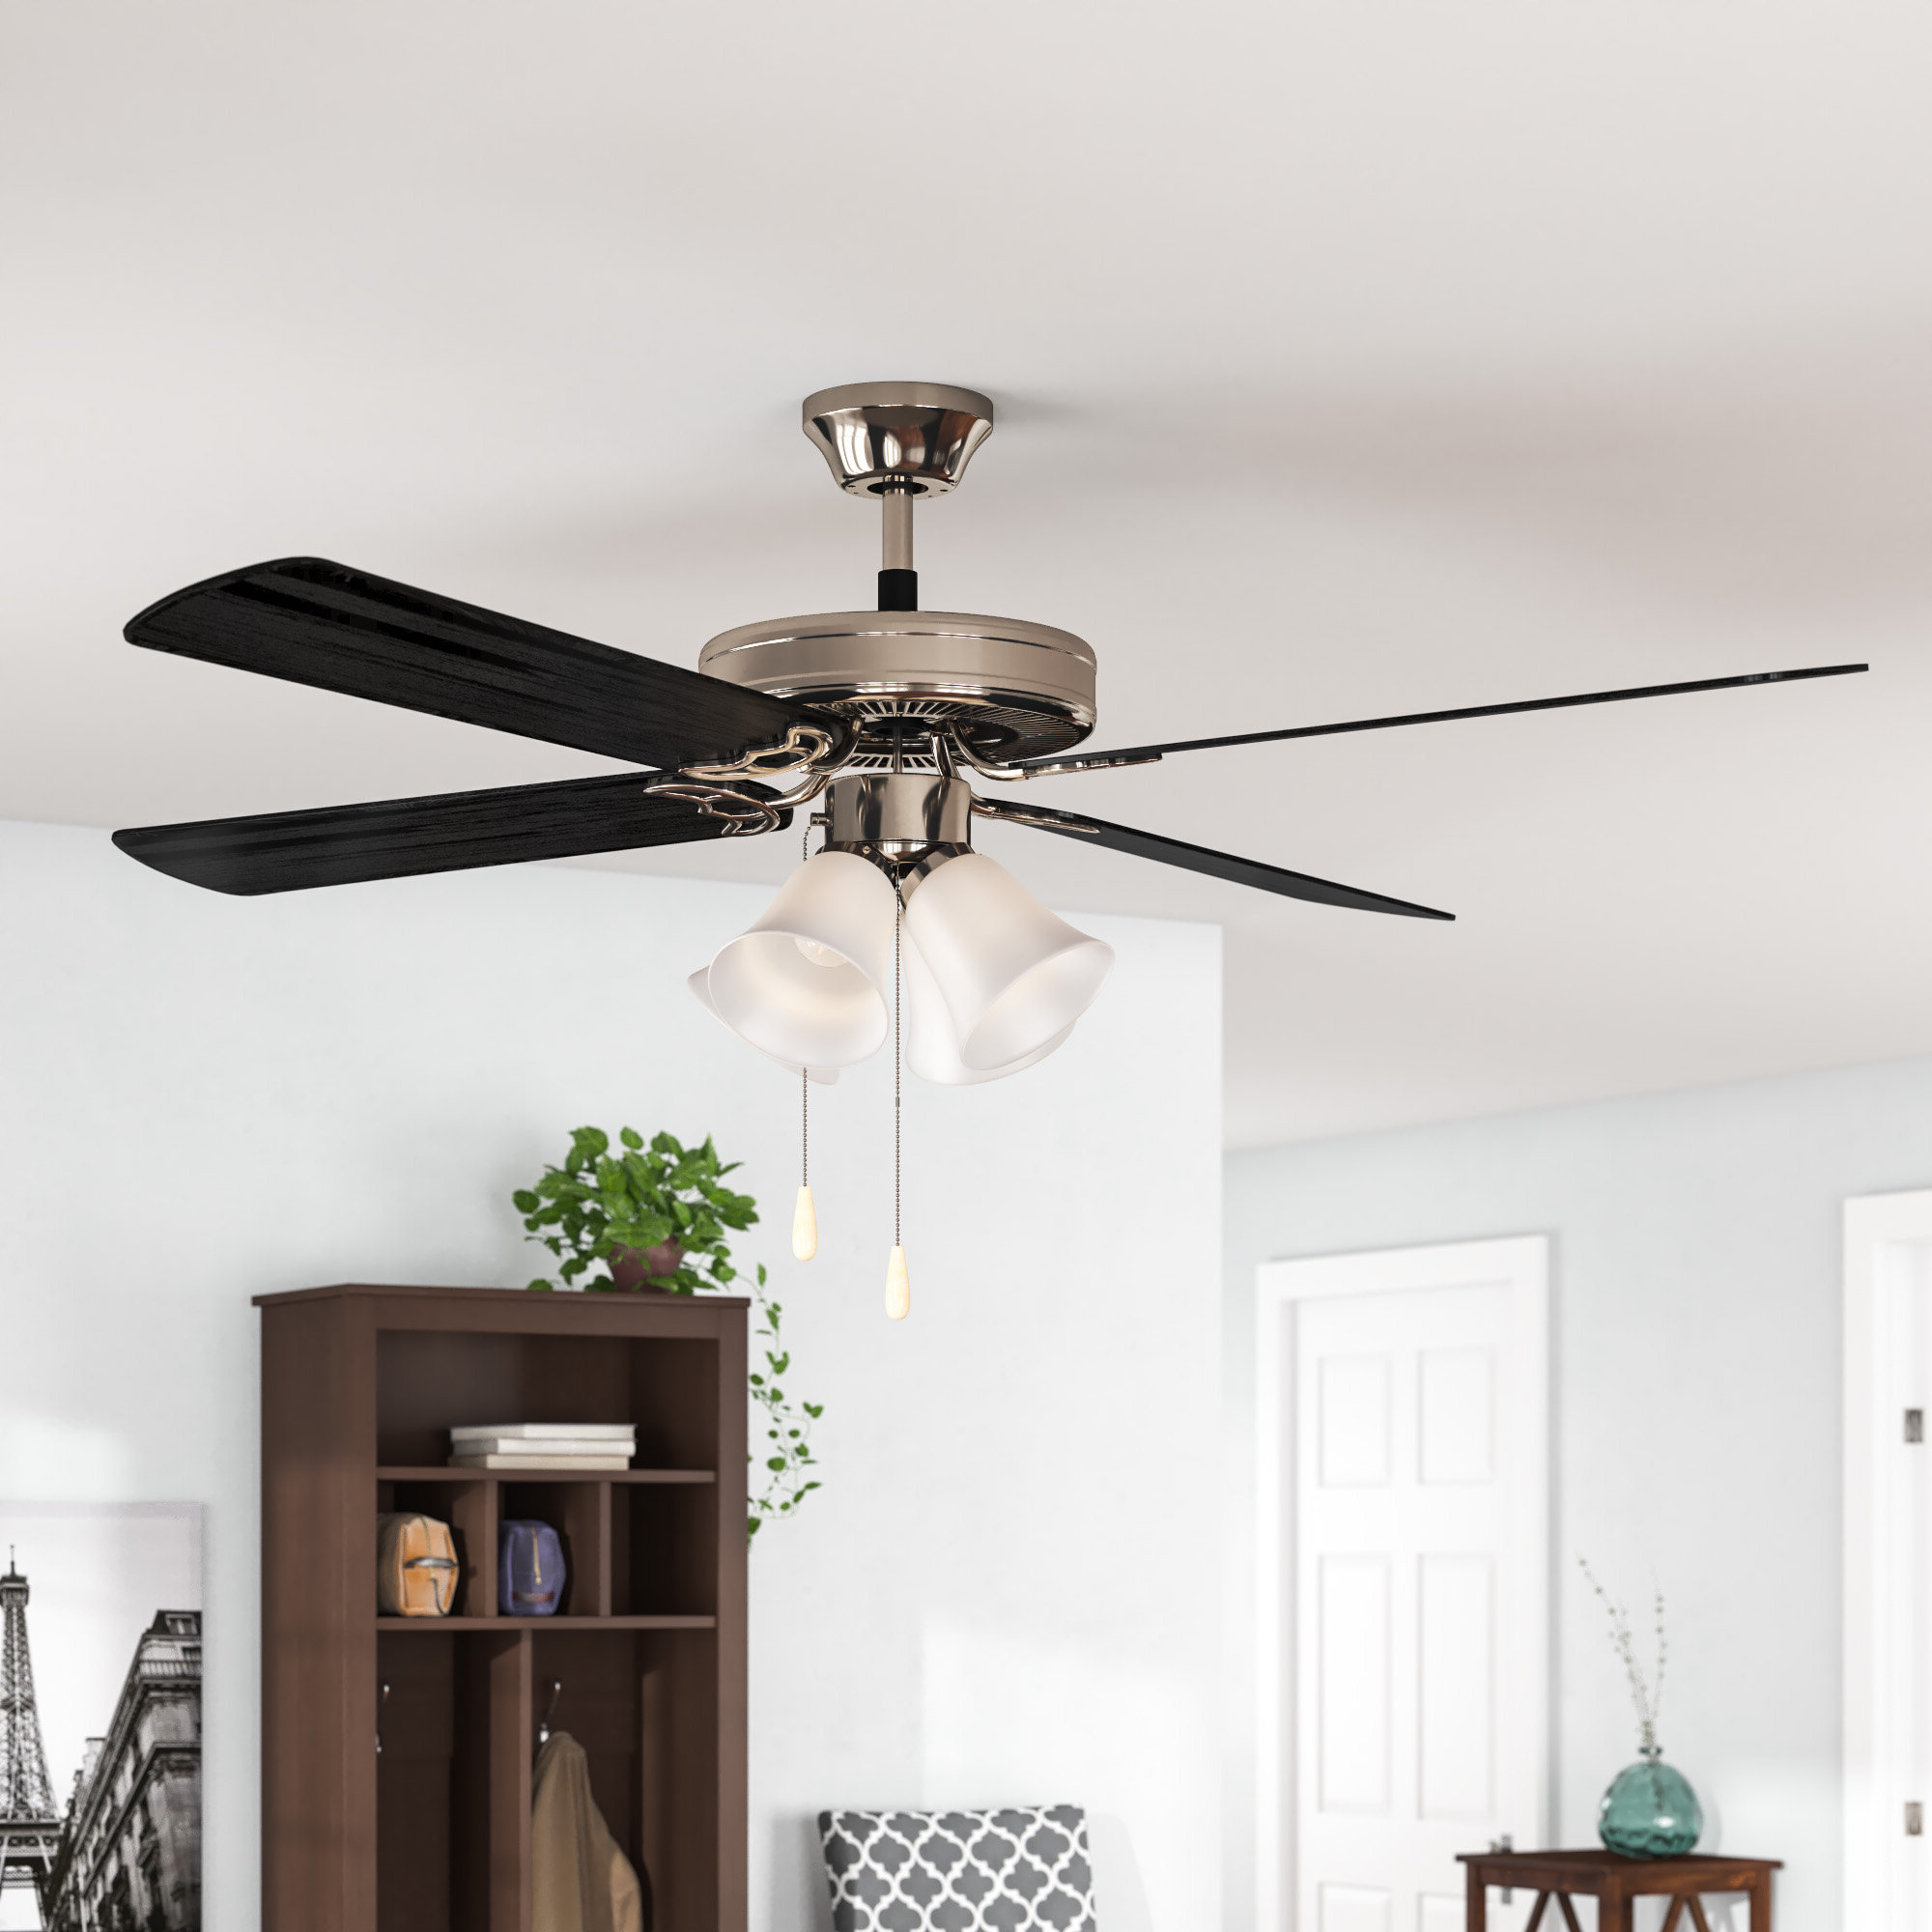 """Recent Southern Breeze 5 Blade Ceiling Fans Intended For 52"""" Cedar Drive 5 Blade Ceiling Fan, Light Kit Included (View 11 of 20)"""